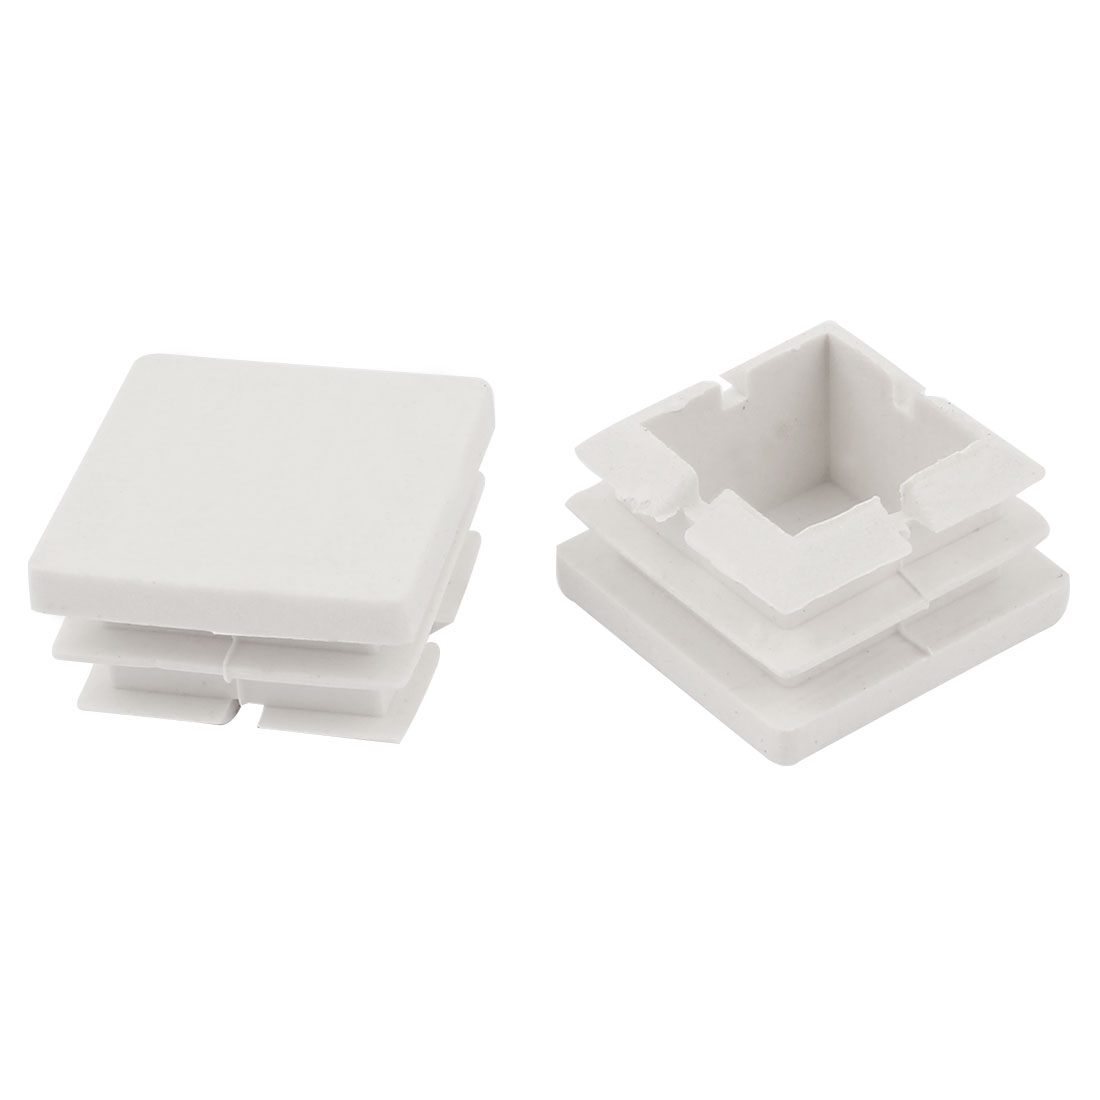 2 Pieces White Plastic Square Blanking End Caps Tubing Tube Inserts 25mm x 25mm